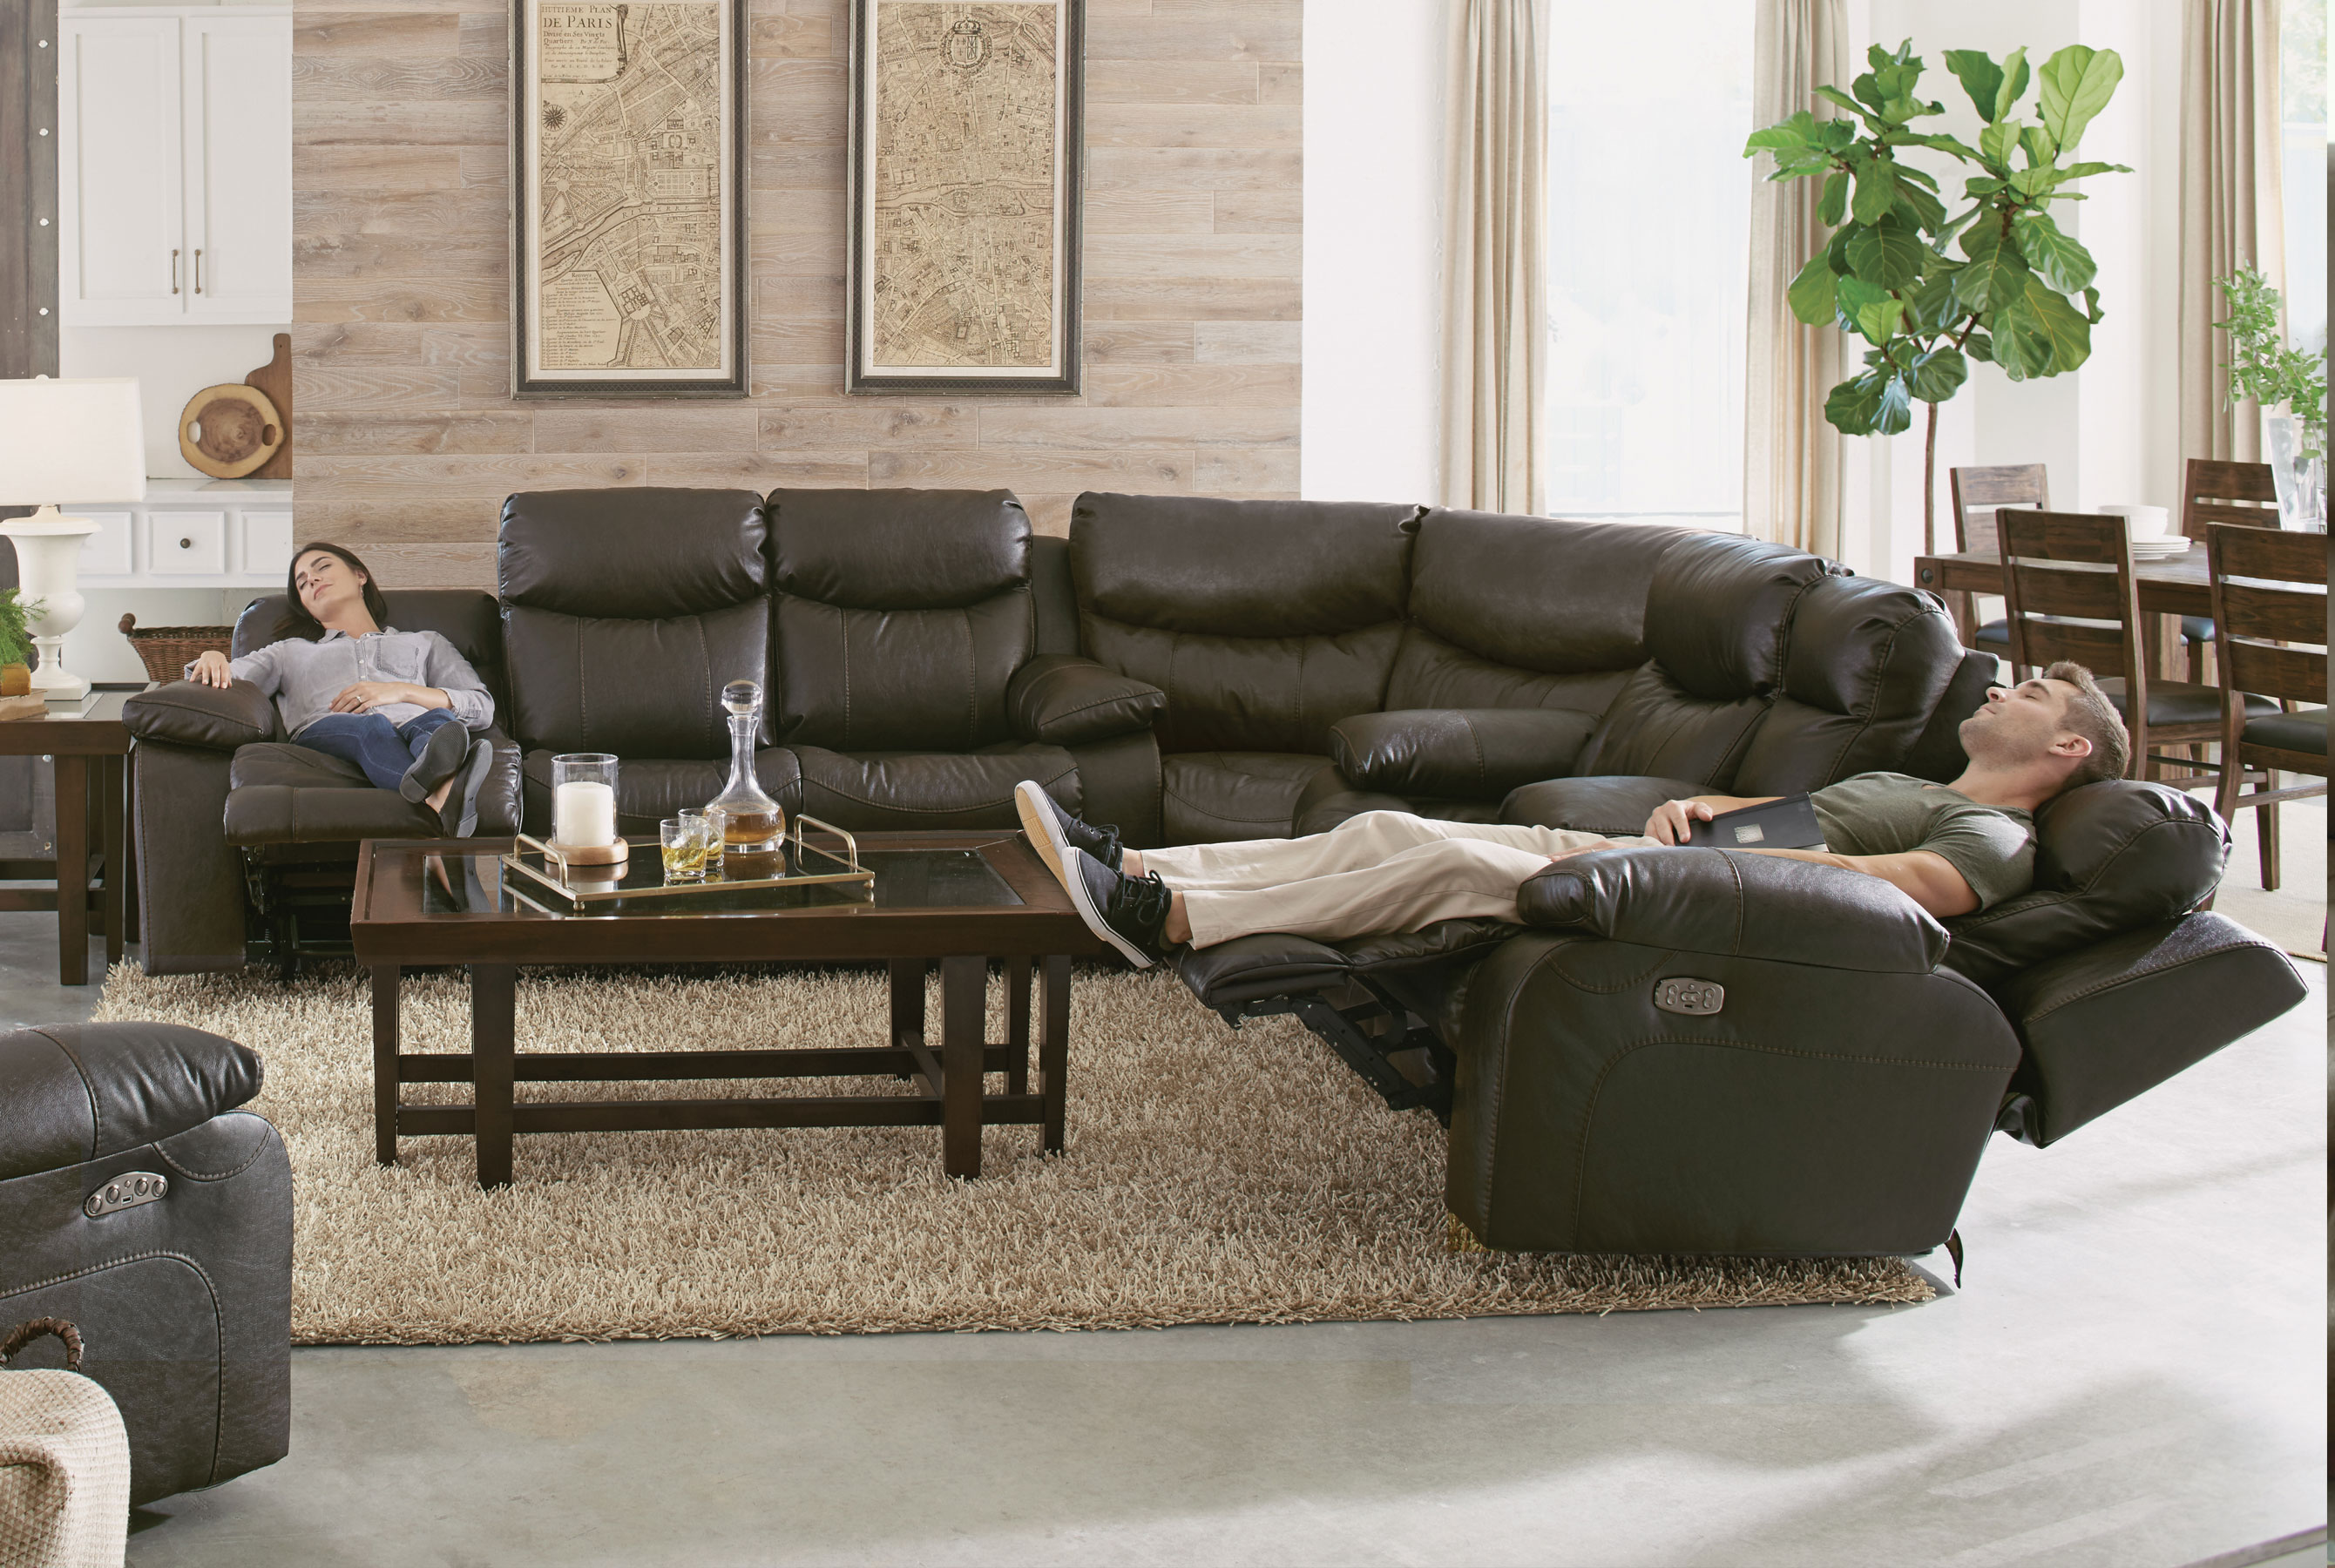 set living shop creek piece leather bradford city two motion sectional simmons reclining furniture upholstery room